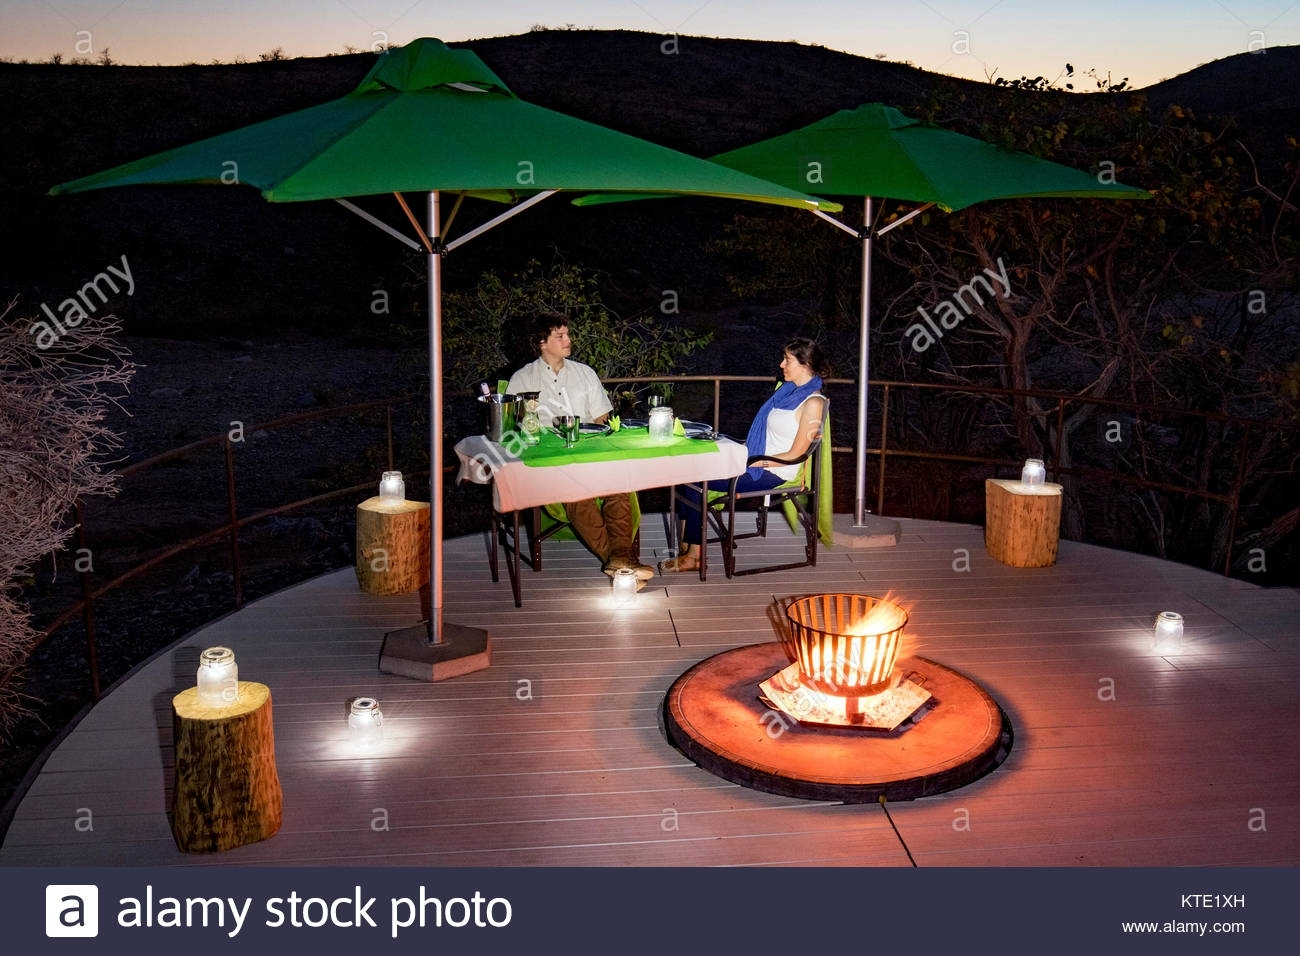 Romantic Outdoor Dinner Lanterns Stock Photos & Romantic Outdoor intended for Outdoor Dining Lanterns (Image 16 of 20)